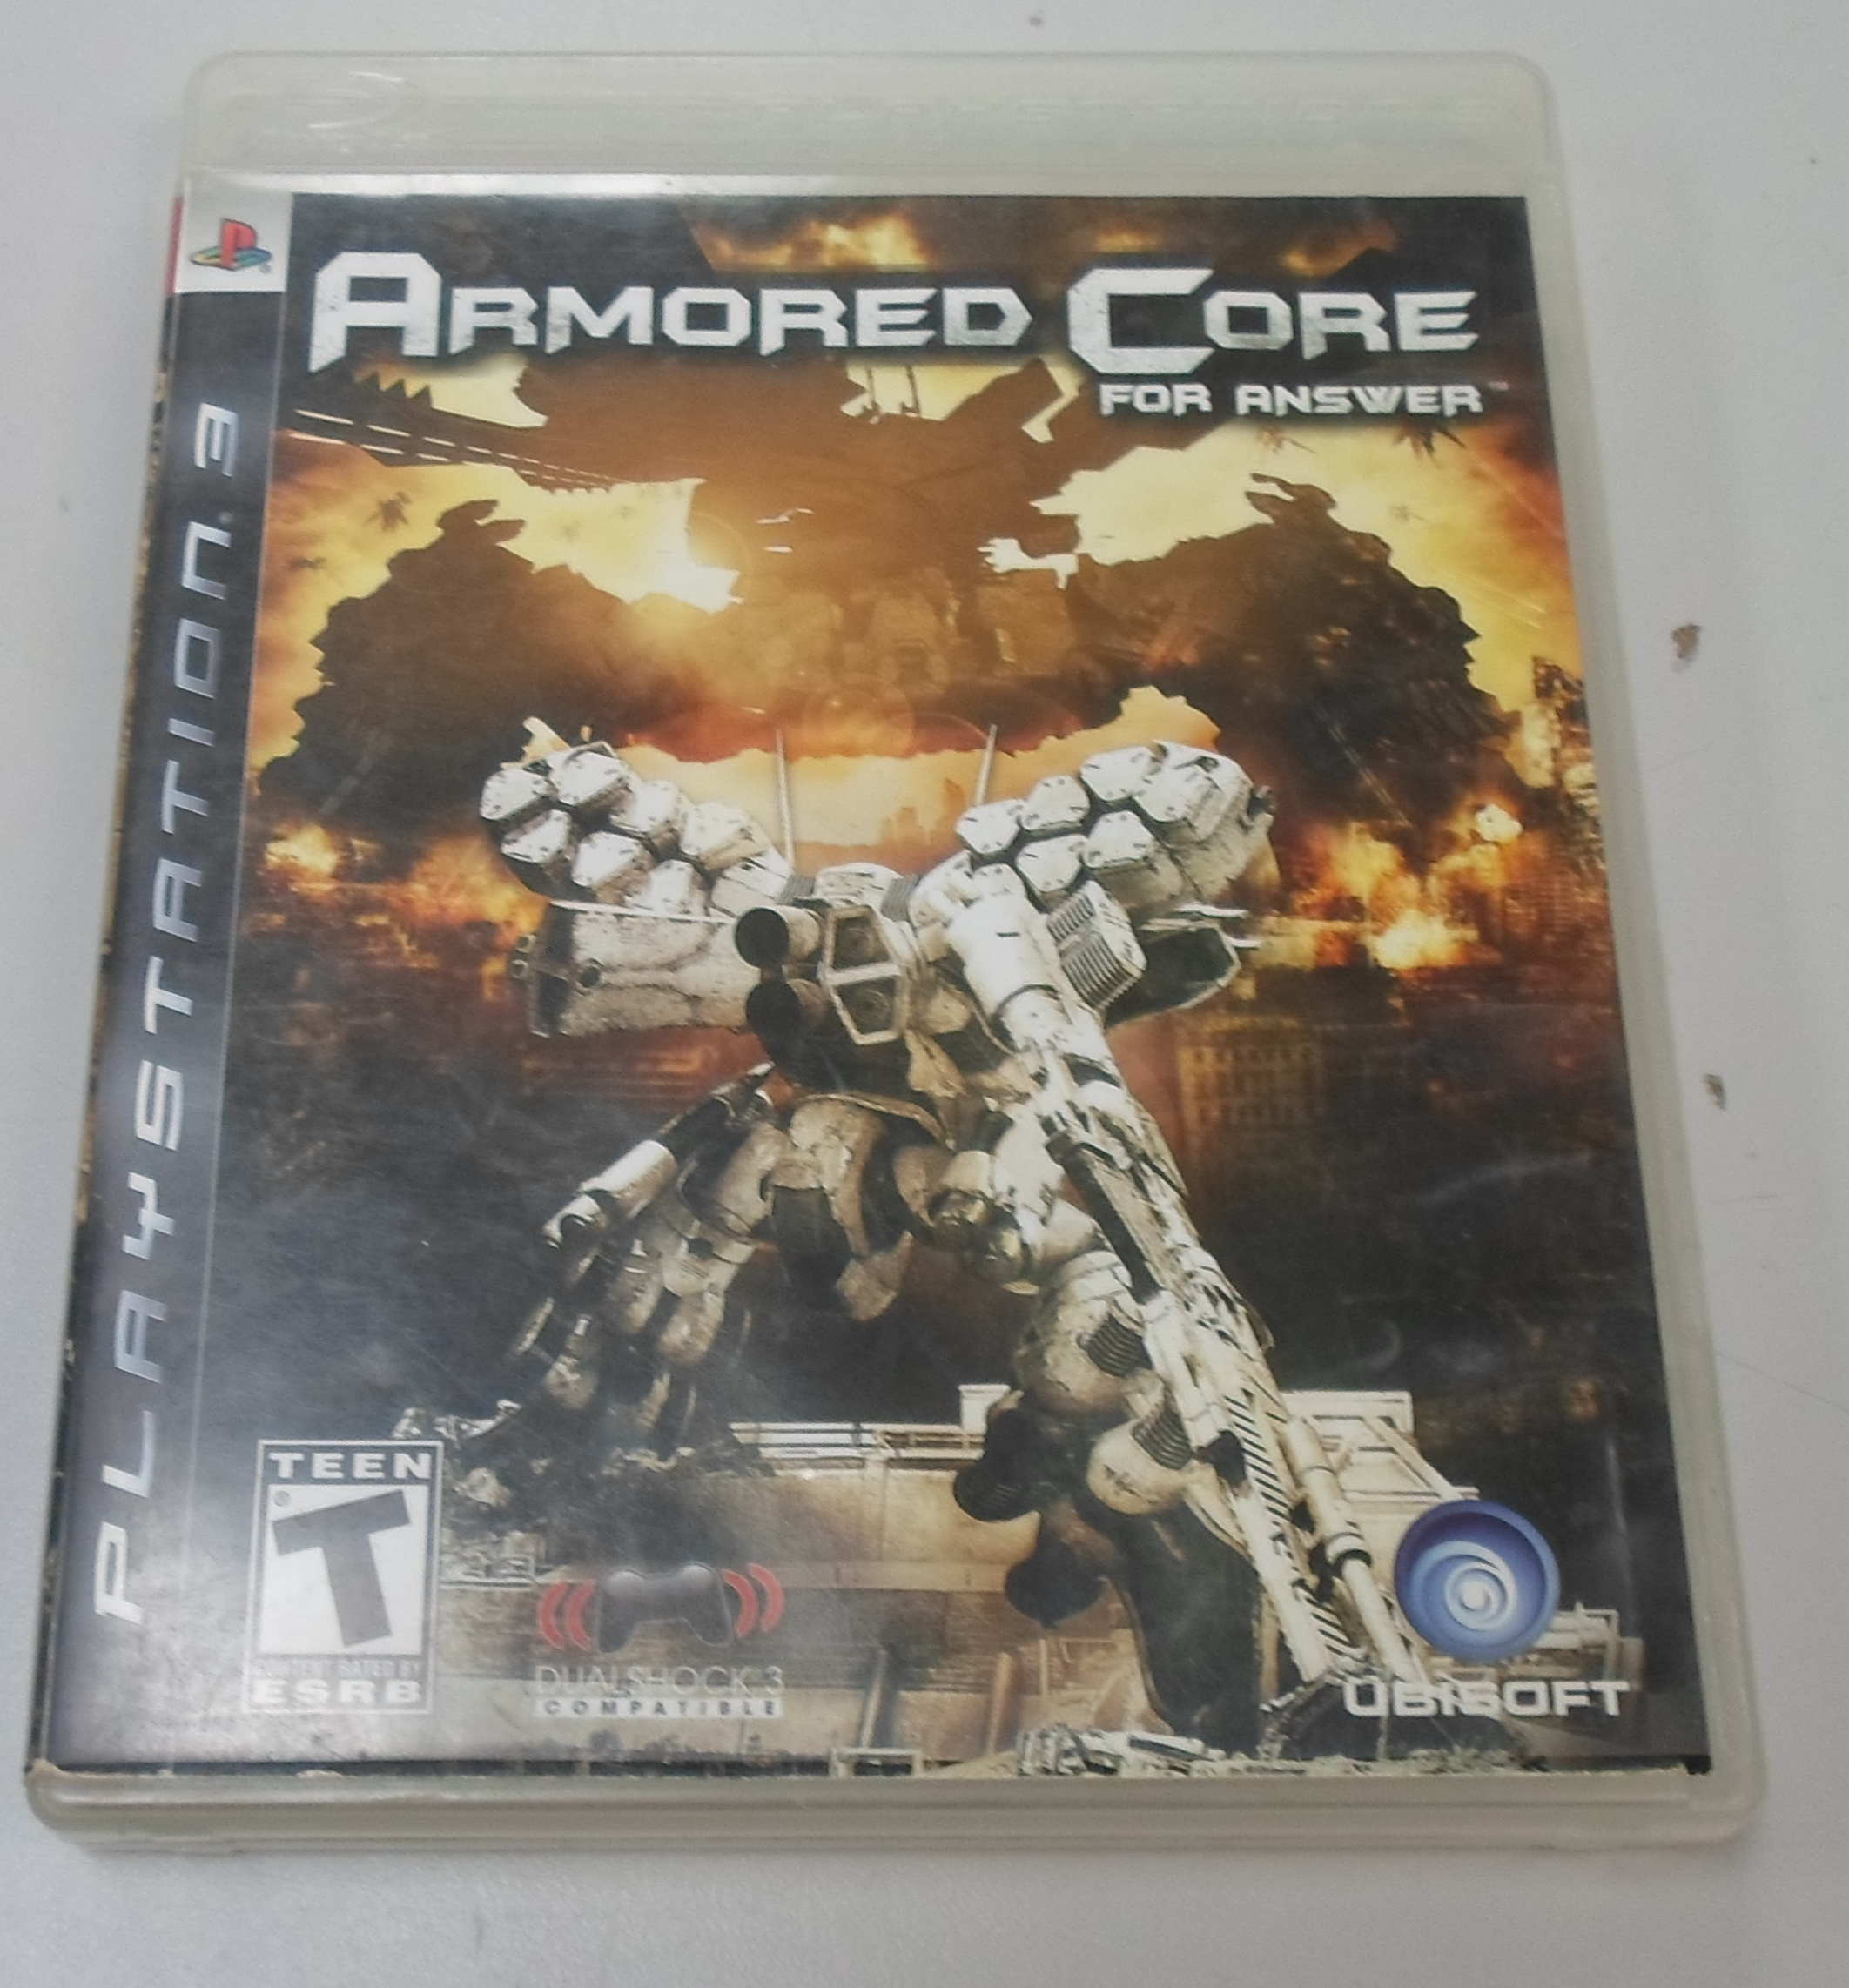 ARMORED CORE FOR ANSWER  - PLAYSTATION 3 GAME